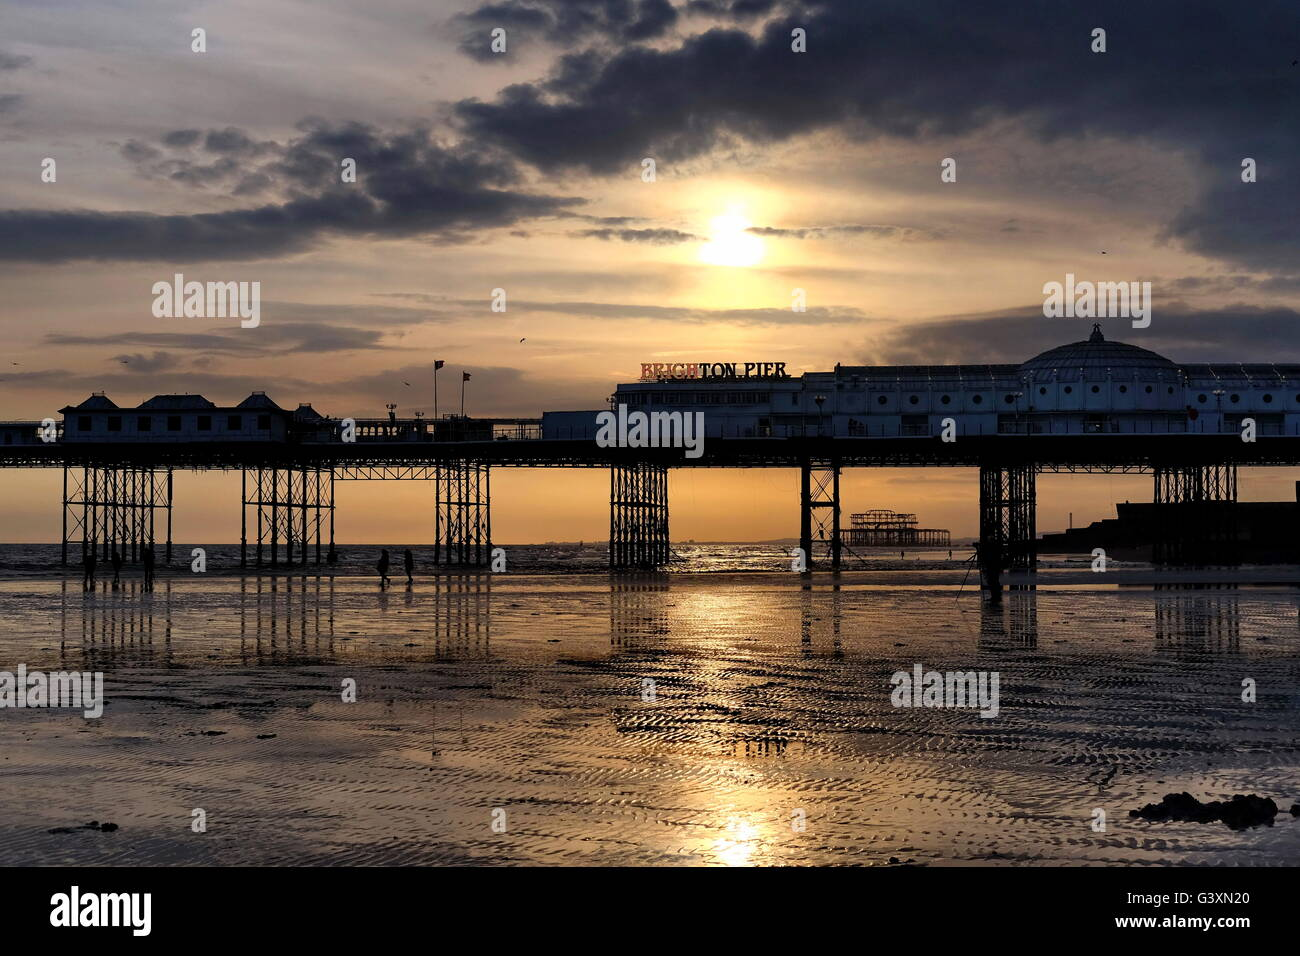 Spring Silhouettes And Shadows >> A Low Sun On A Late Spring Afternoon Silhouettes The Two Piers In